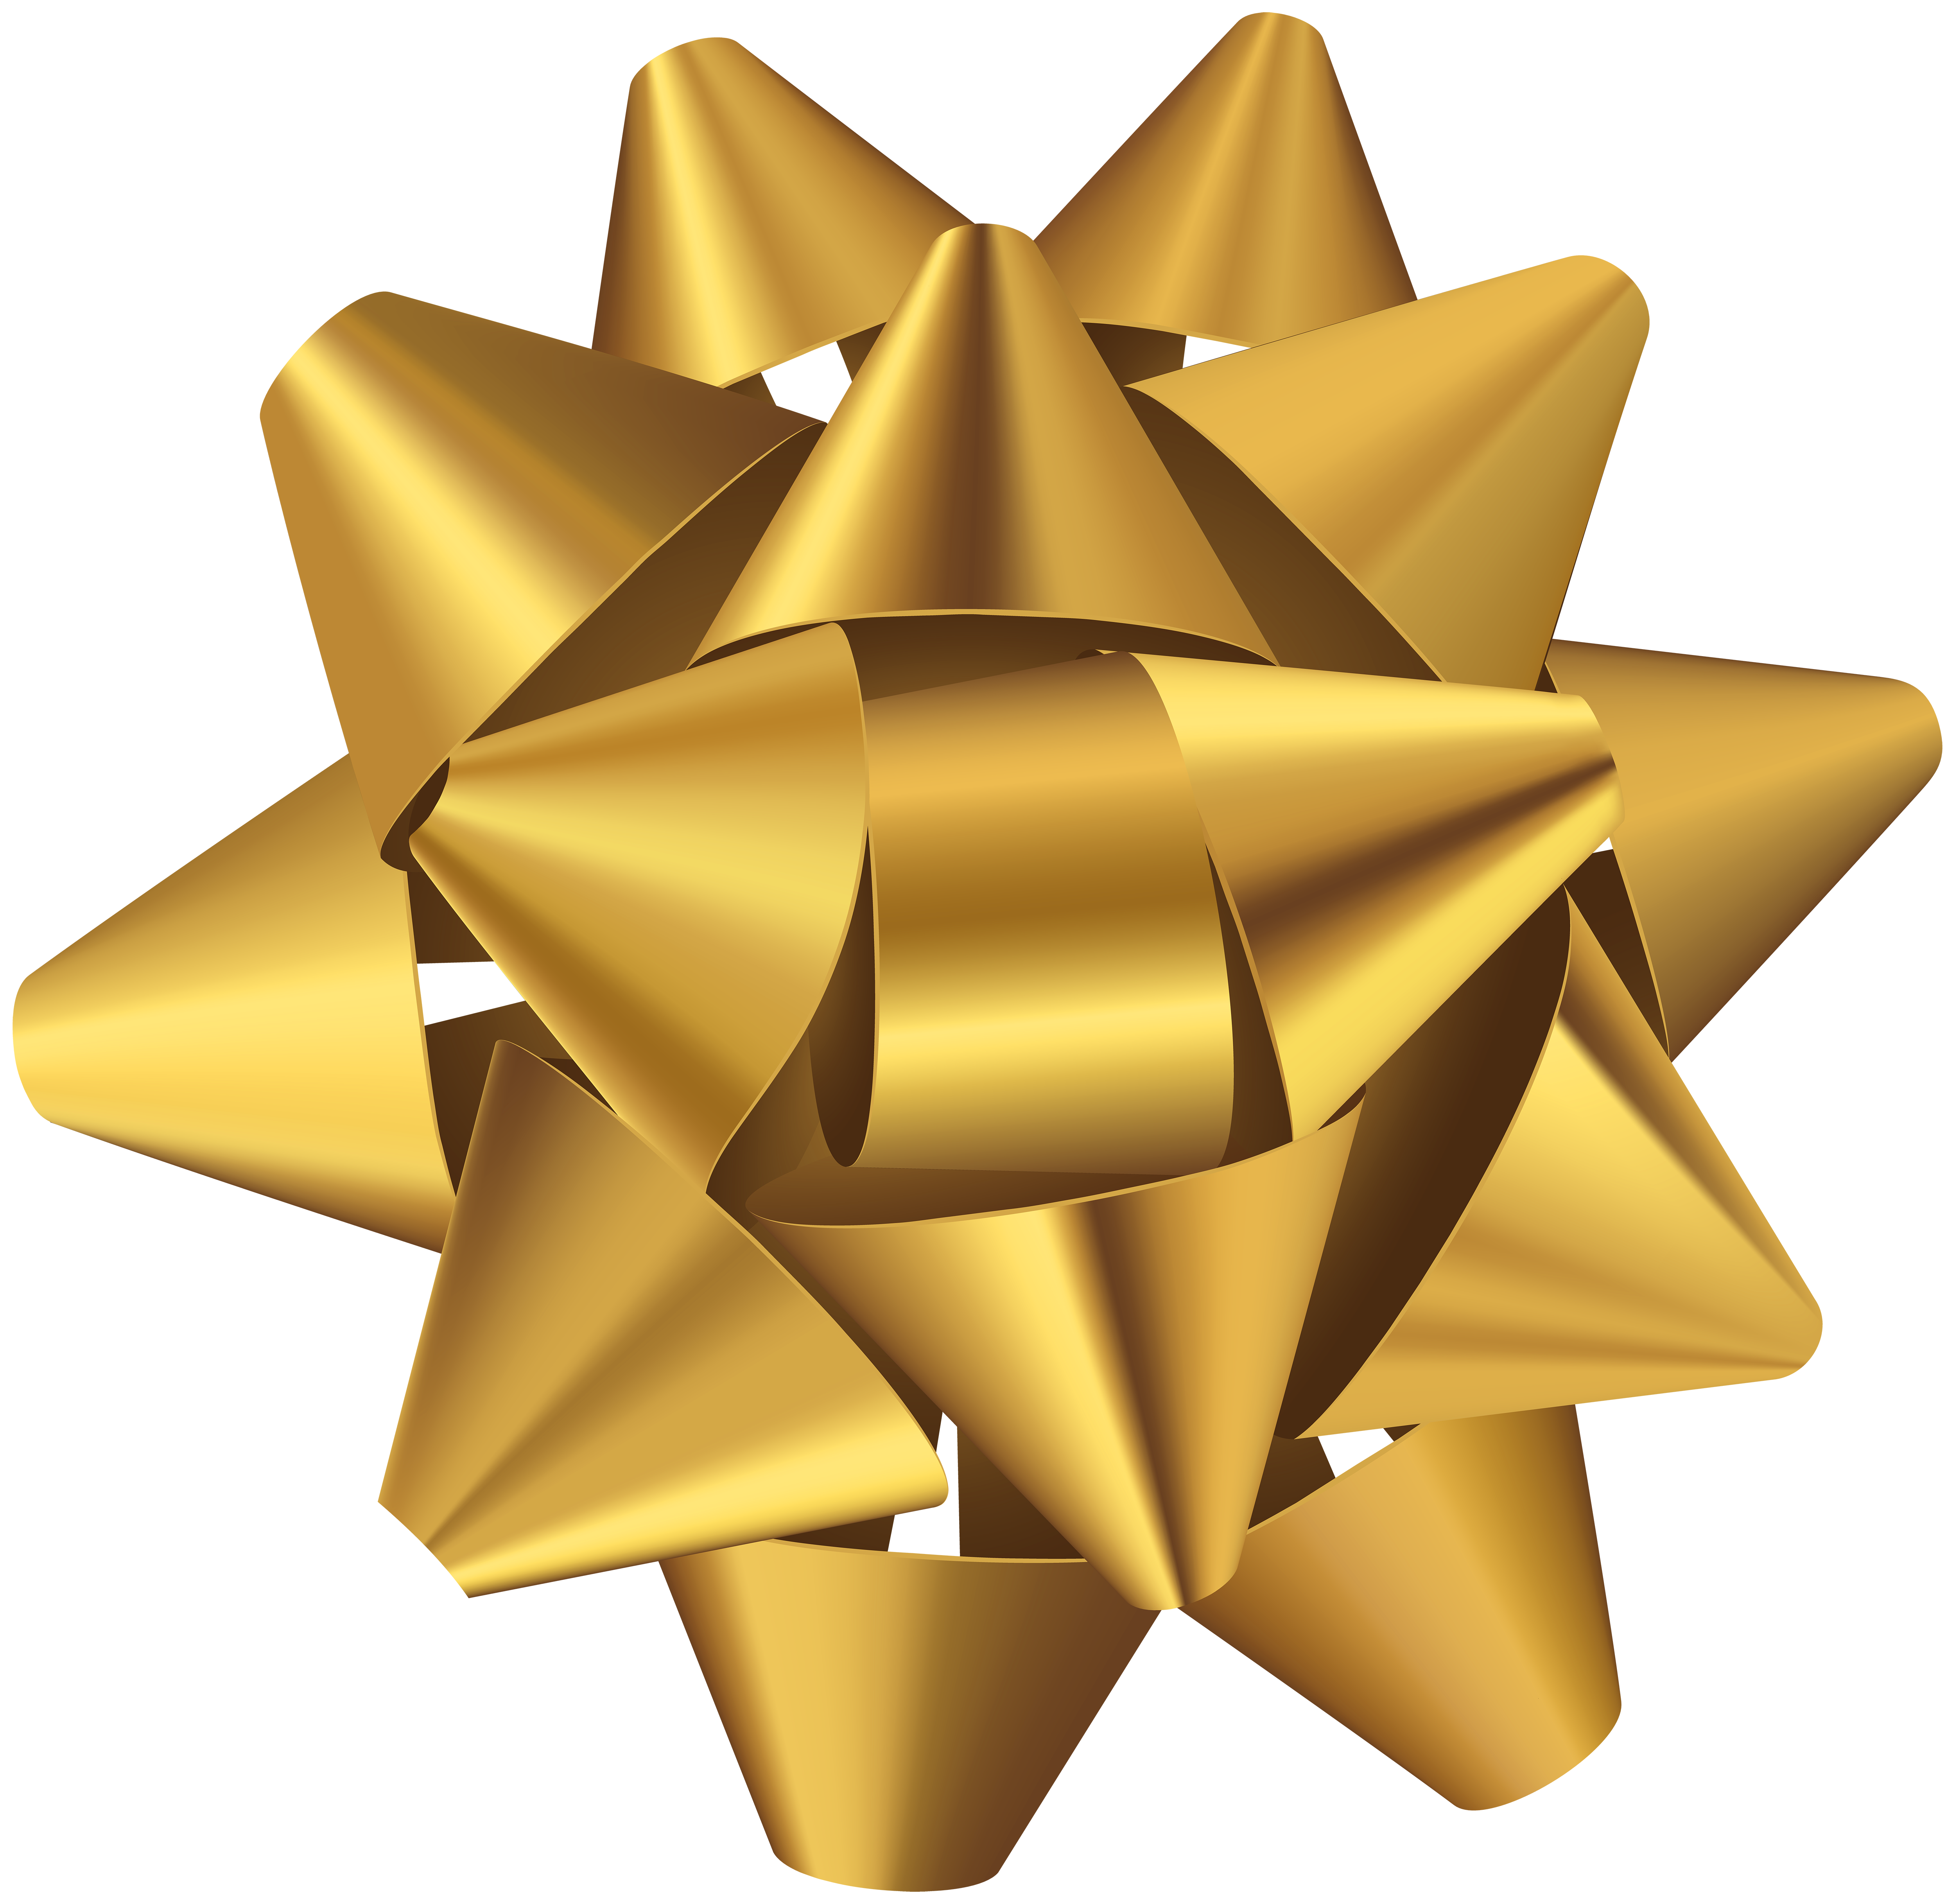 Star bow clipart picture free download Golden Bow Deco Transparent Clip Art Image | Gallery Yopriceville ... picture free download